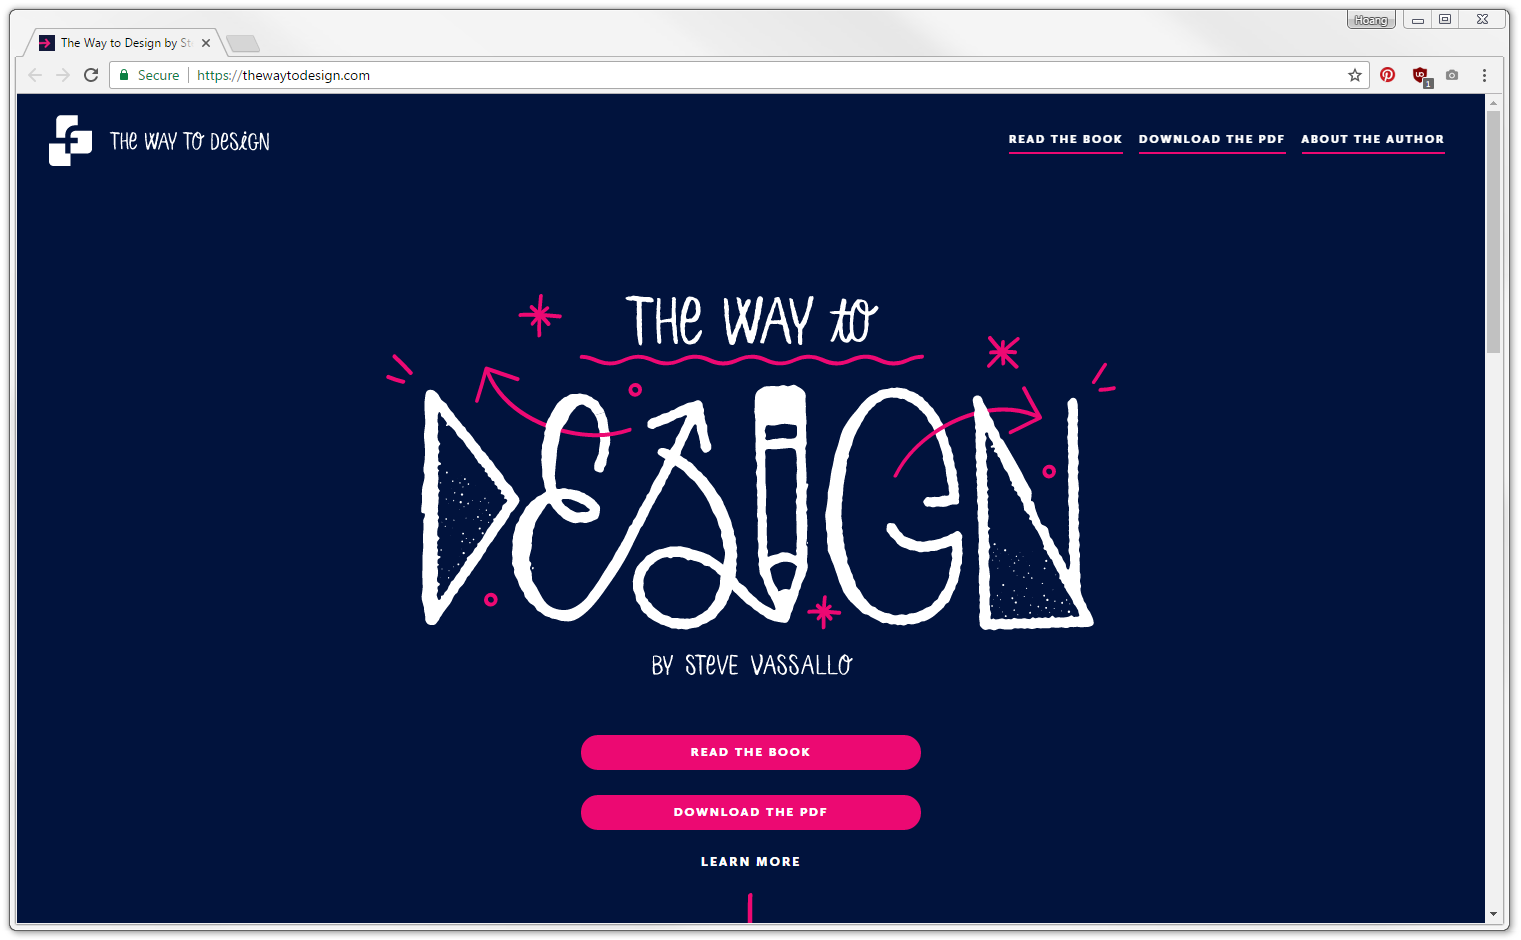 Steve Vassallo - The Way to Design